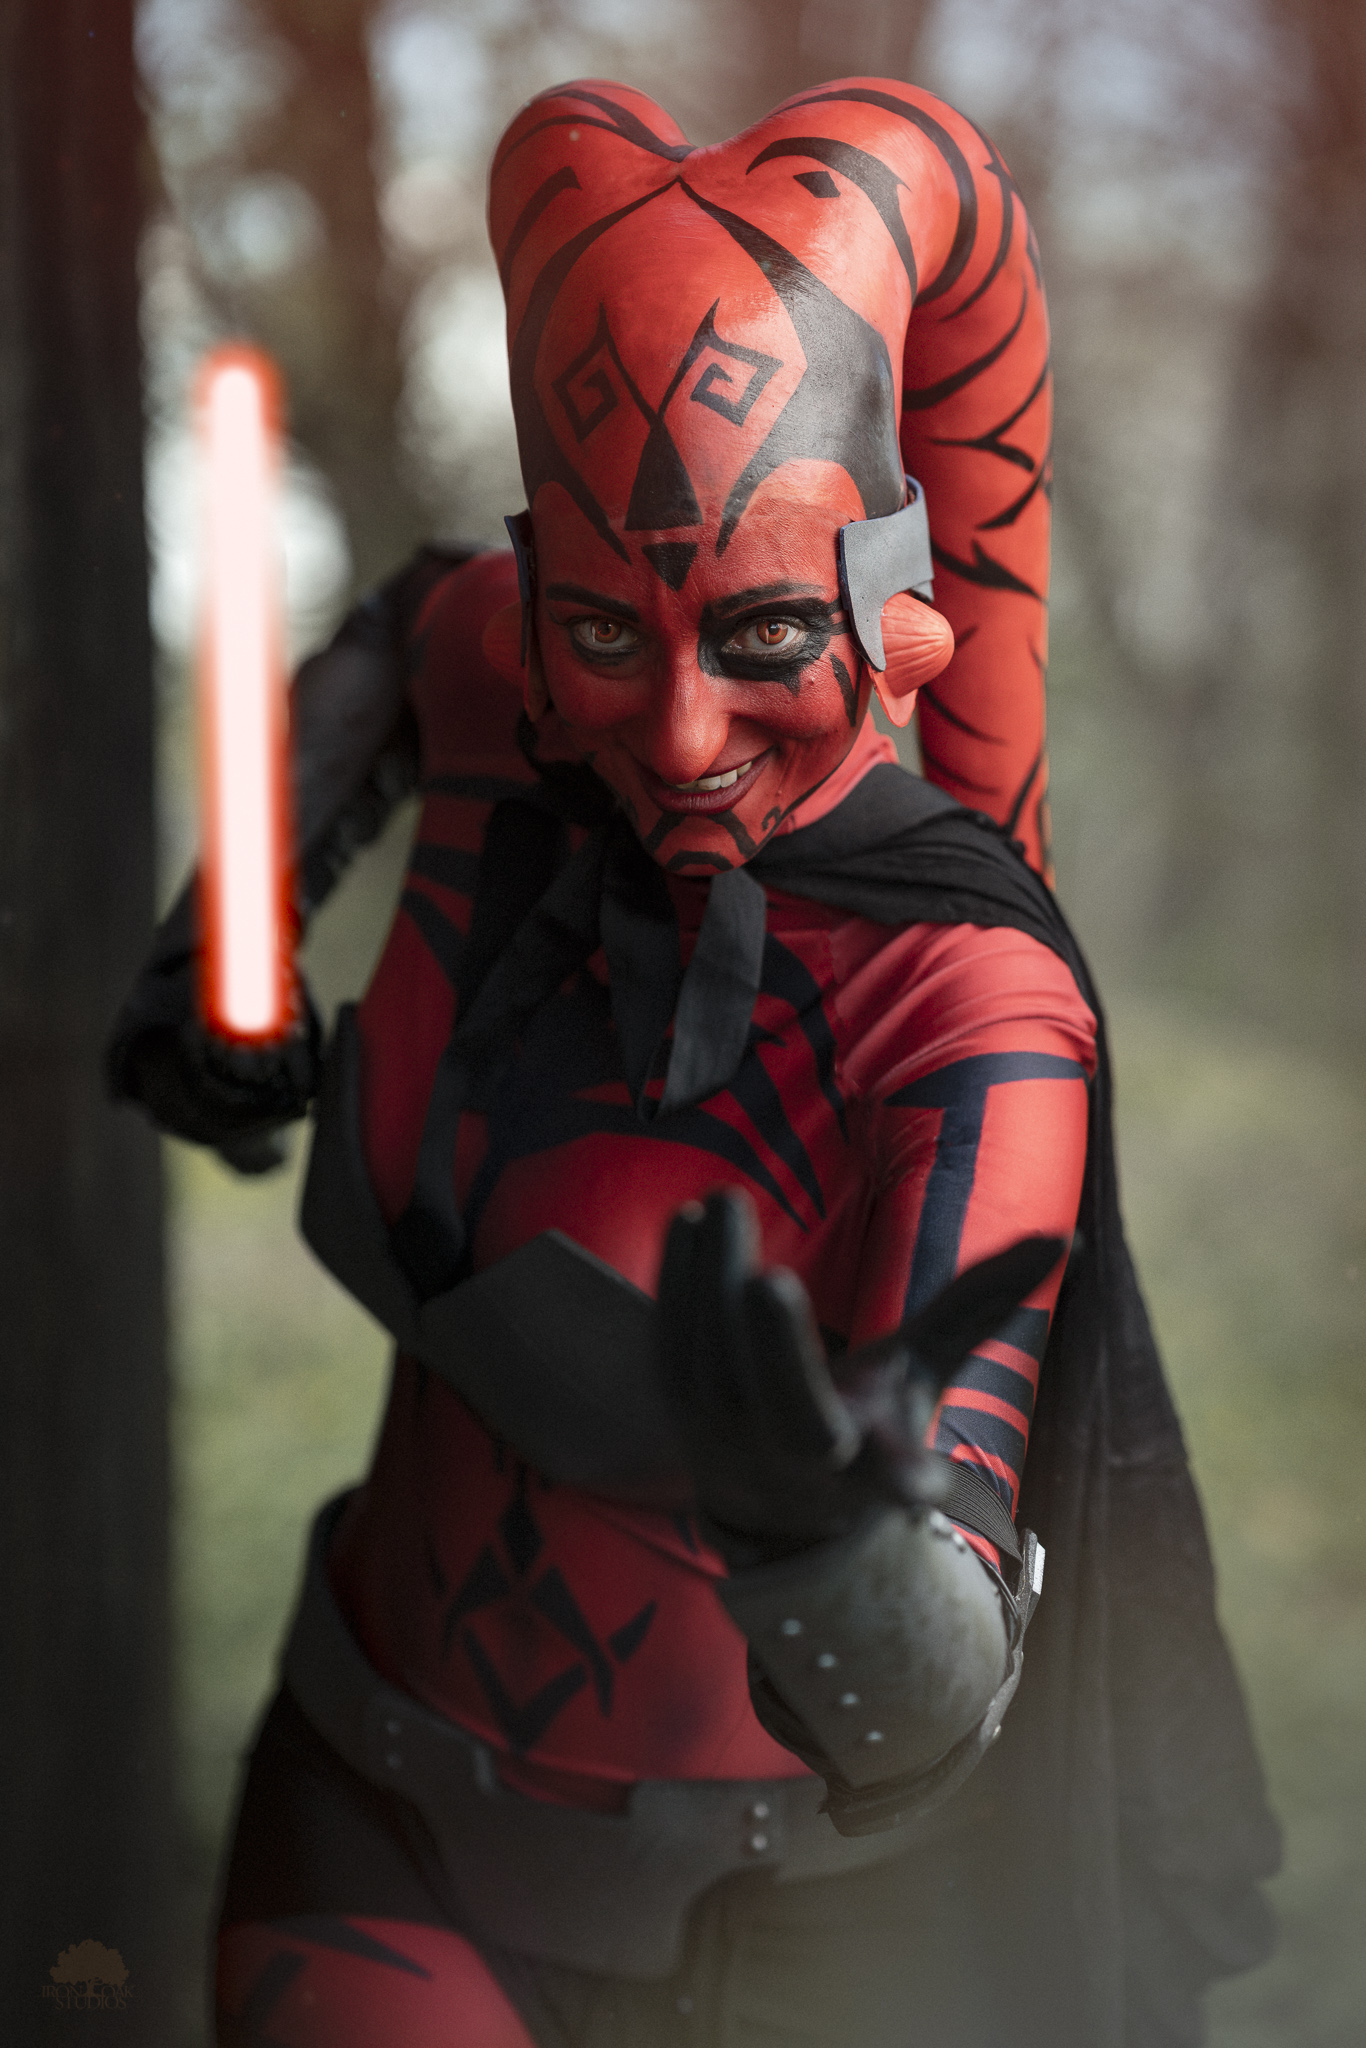 Phila-Comic-Con-2019-Darth-Talon-Iron-Oak-Studios-3.jpg